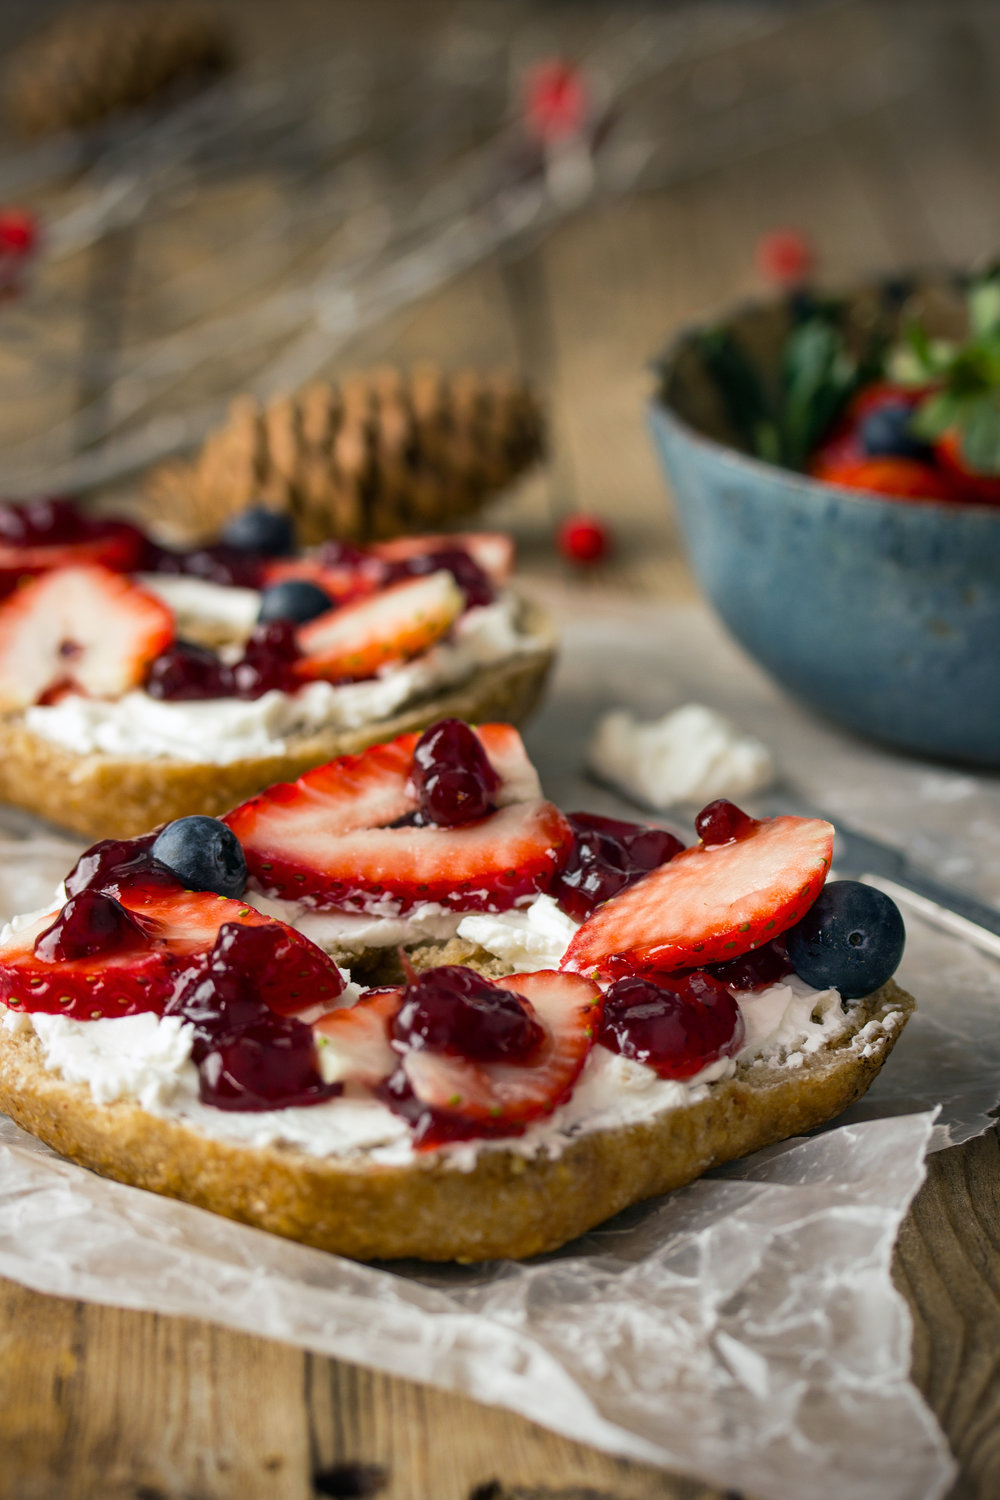 Bagel with goat cheese, strawberries, blueberries and lingonberries